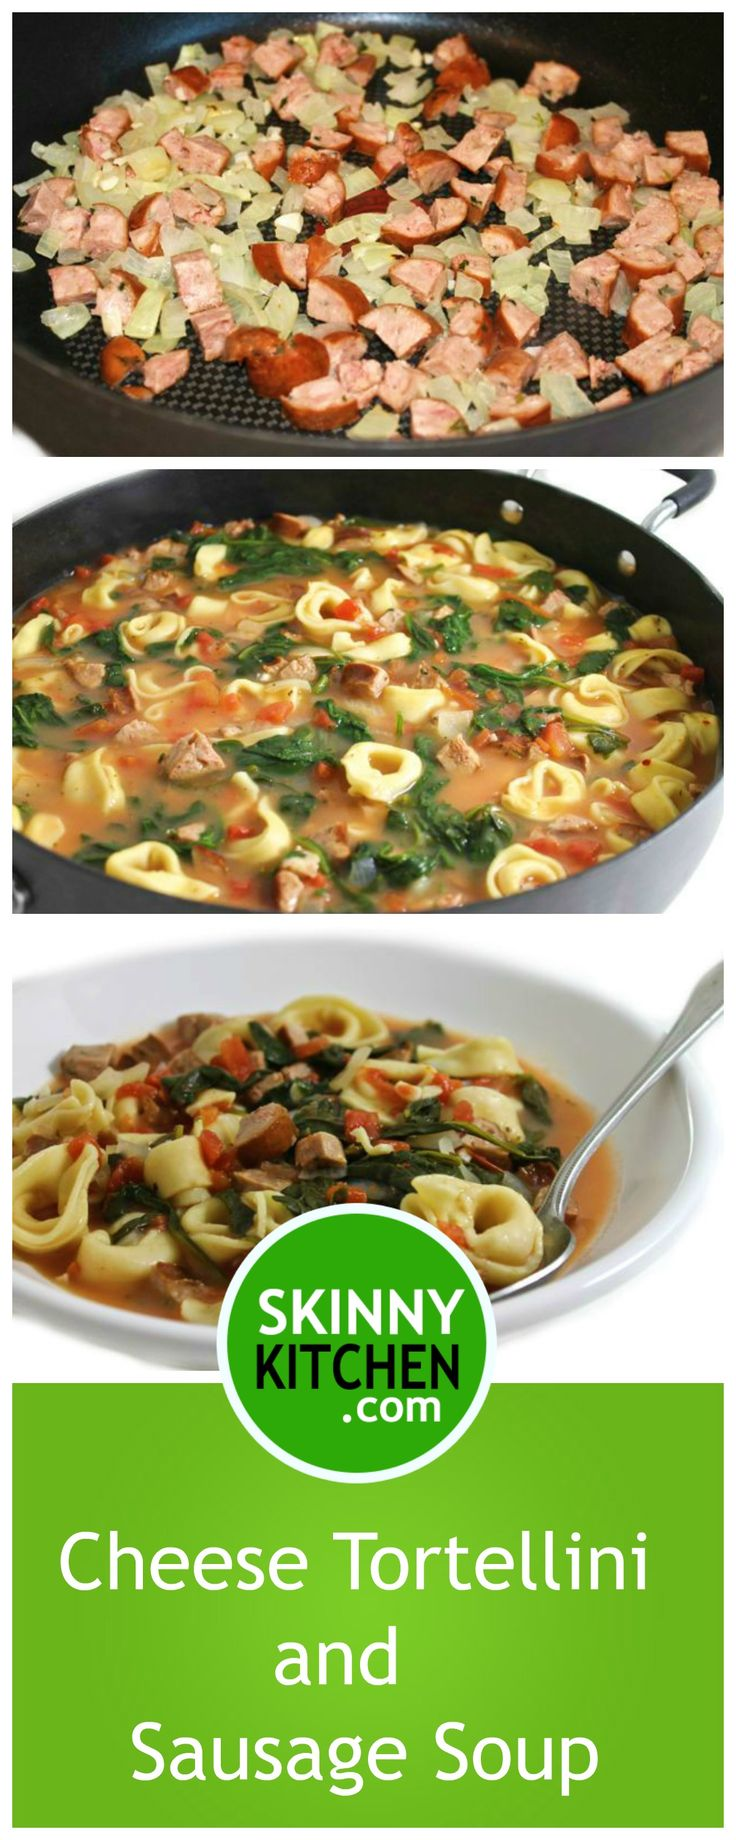 (NEW) SkinnyRustic Cheese Tortellini and Sausage Soup. This is a really good Italian, main course soup. Each huge 2 cup serving has 245 calories, 6g fat and 6 SmartPoints. http://www.skinnykitchen.com/recipes/skinnyrustic-cheese-tortellini-and-sausage-soup/